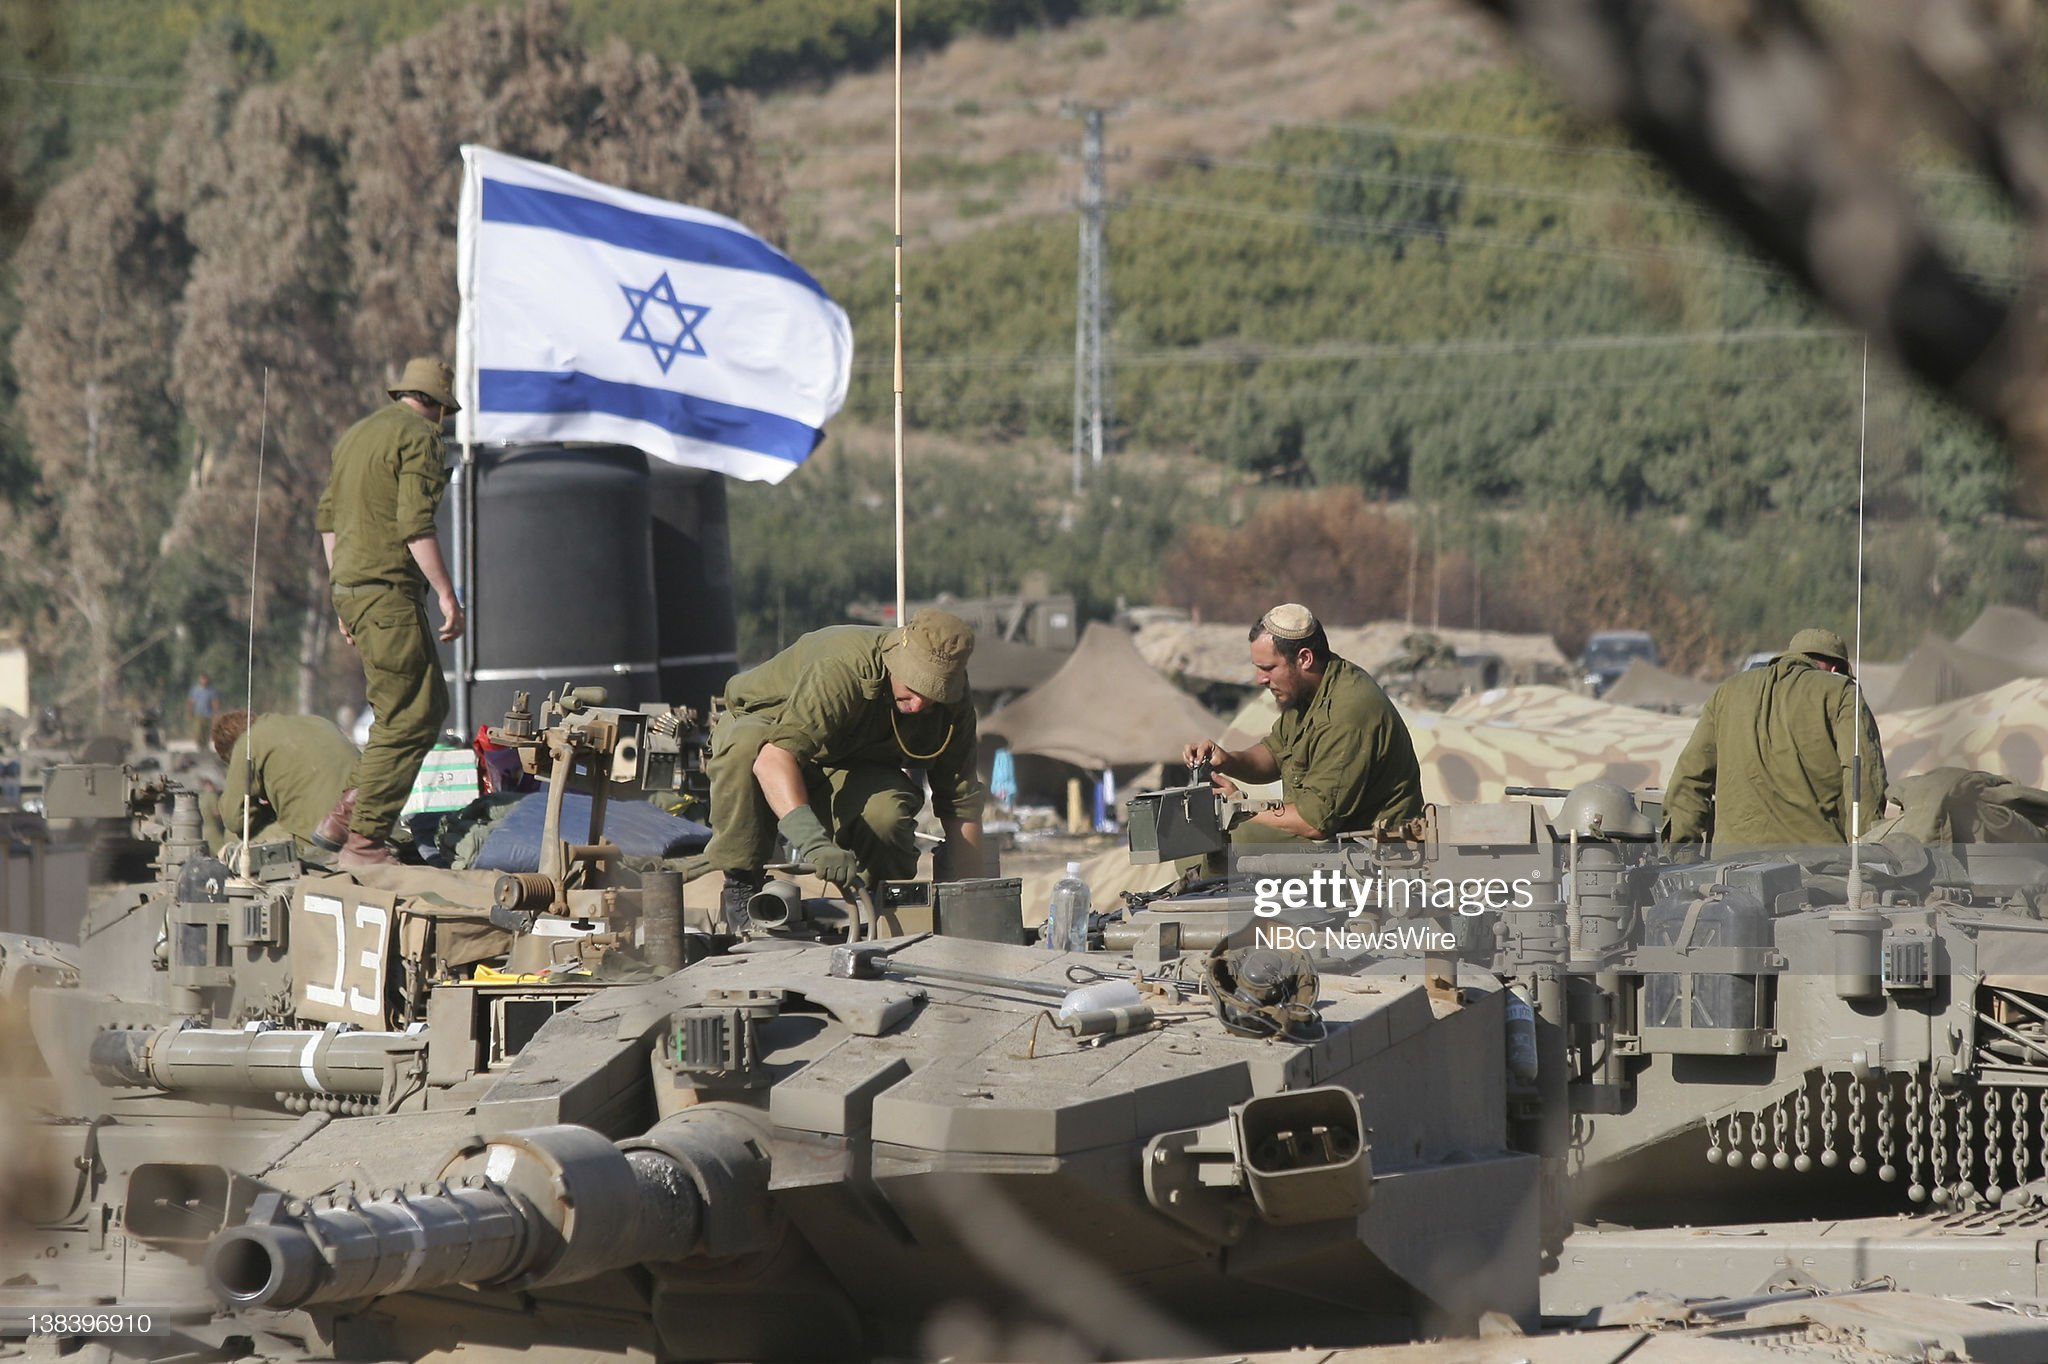 https://media.gettyimages.com/photos/lebanon-war-military-conflict-in-lebanon-and-northern-israel-the-picture-id138396910?s=2048x2048